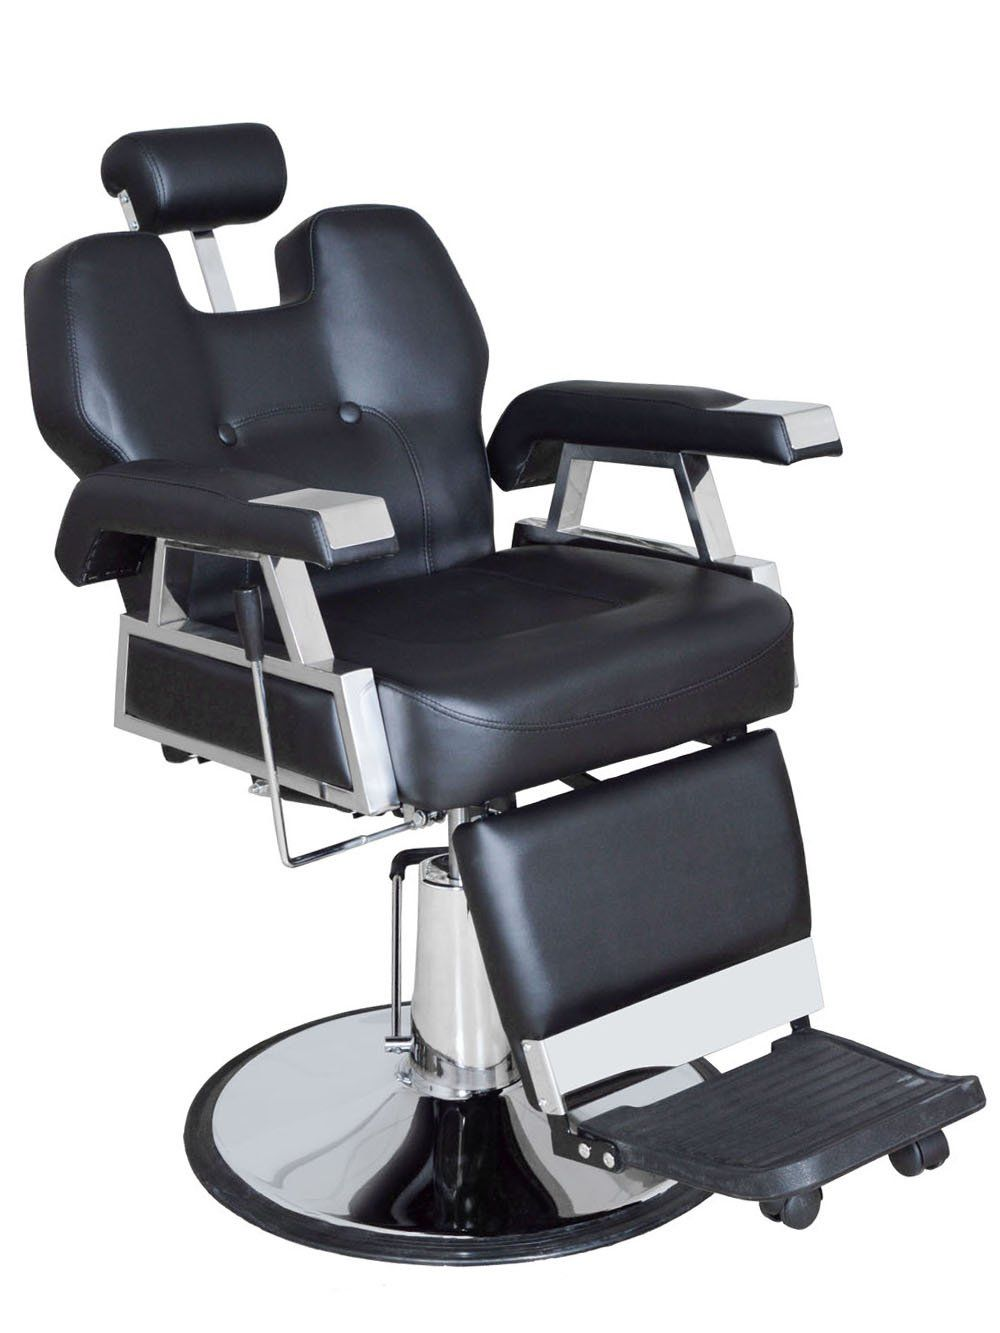 Hydraulic Styling Chair Choosing Perfect Salon Chair Is Not That Easy To Select Your